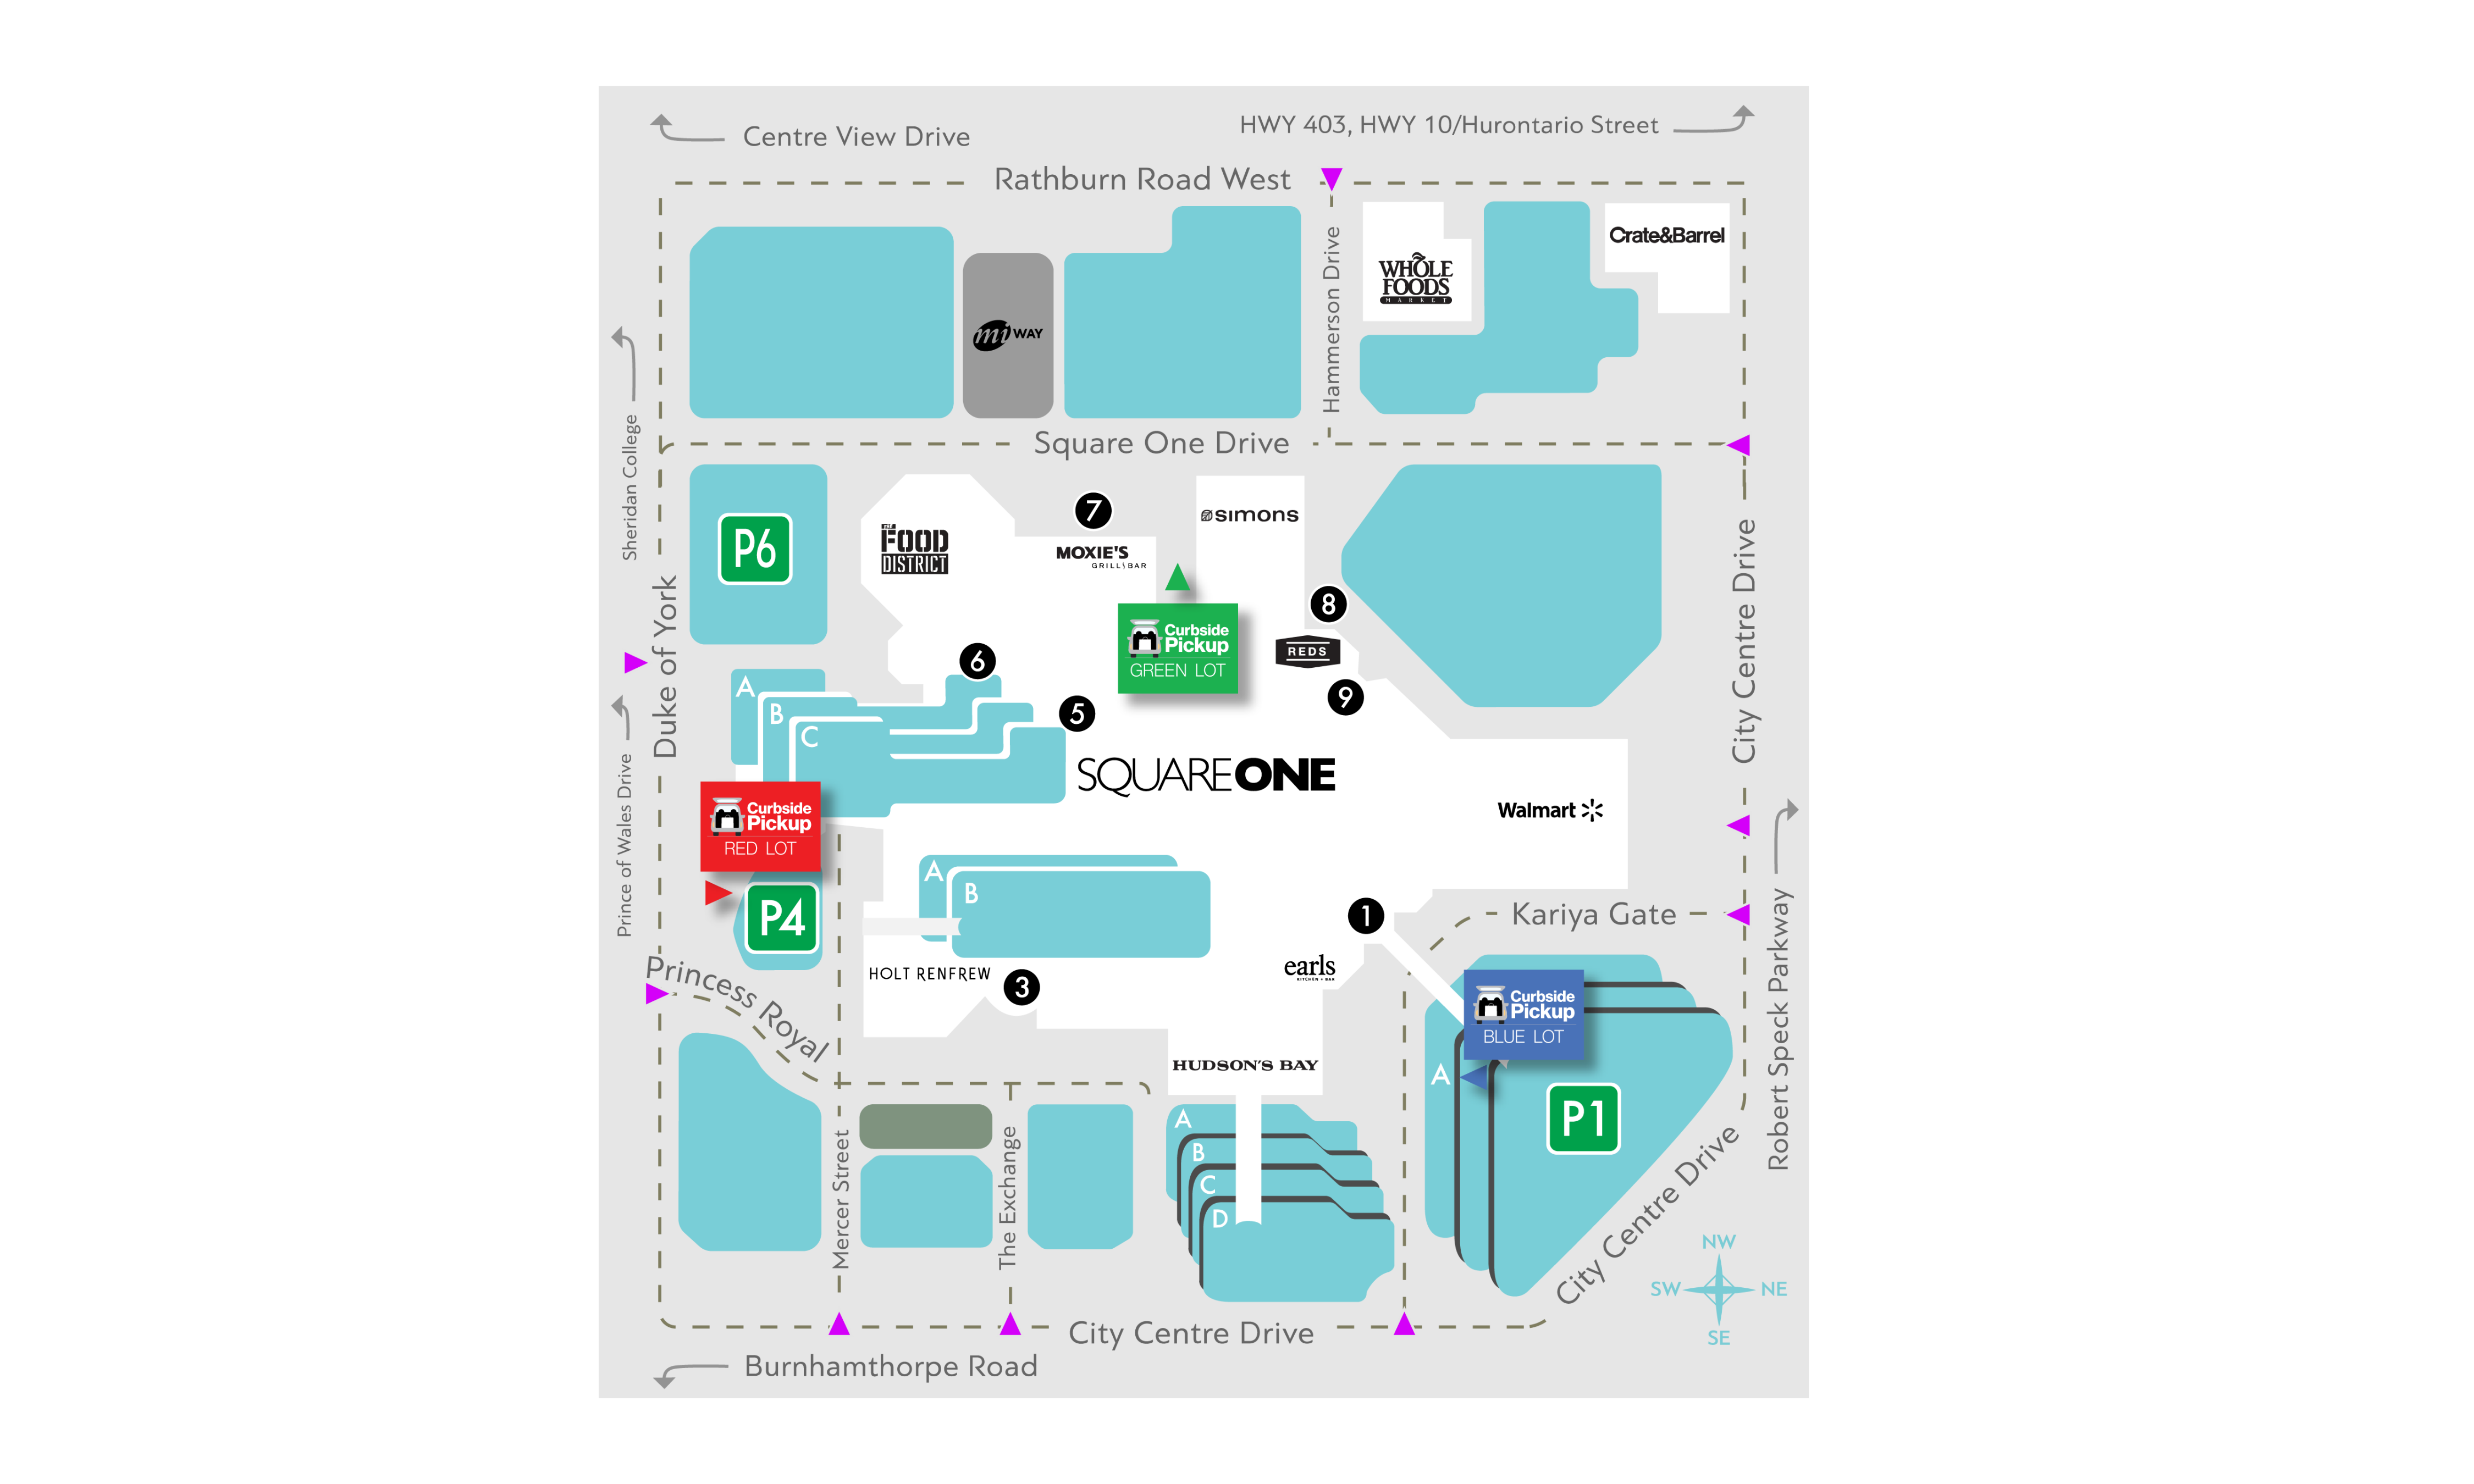 Map of curbside at Square One